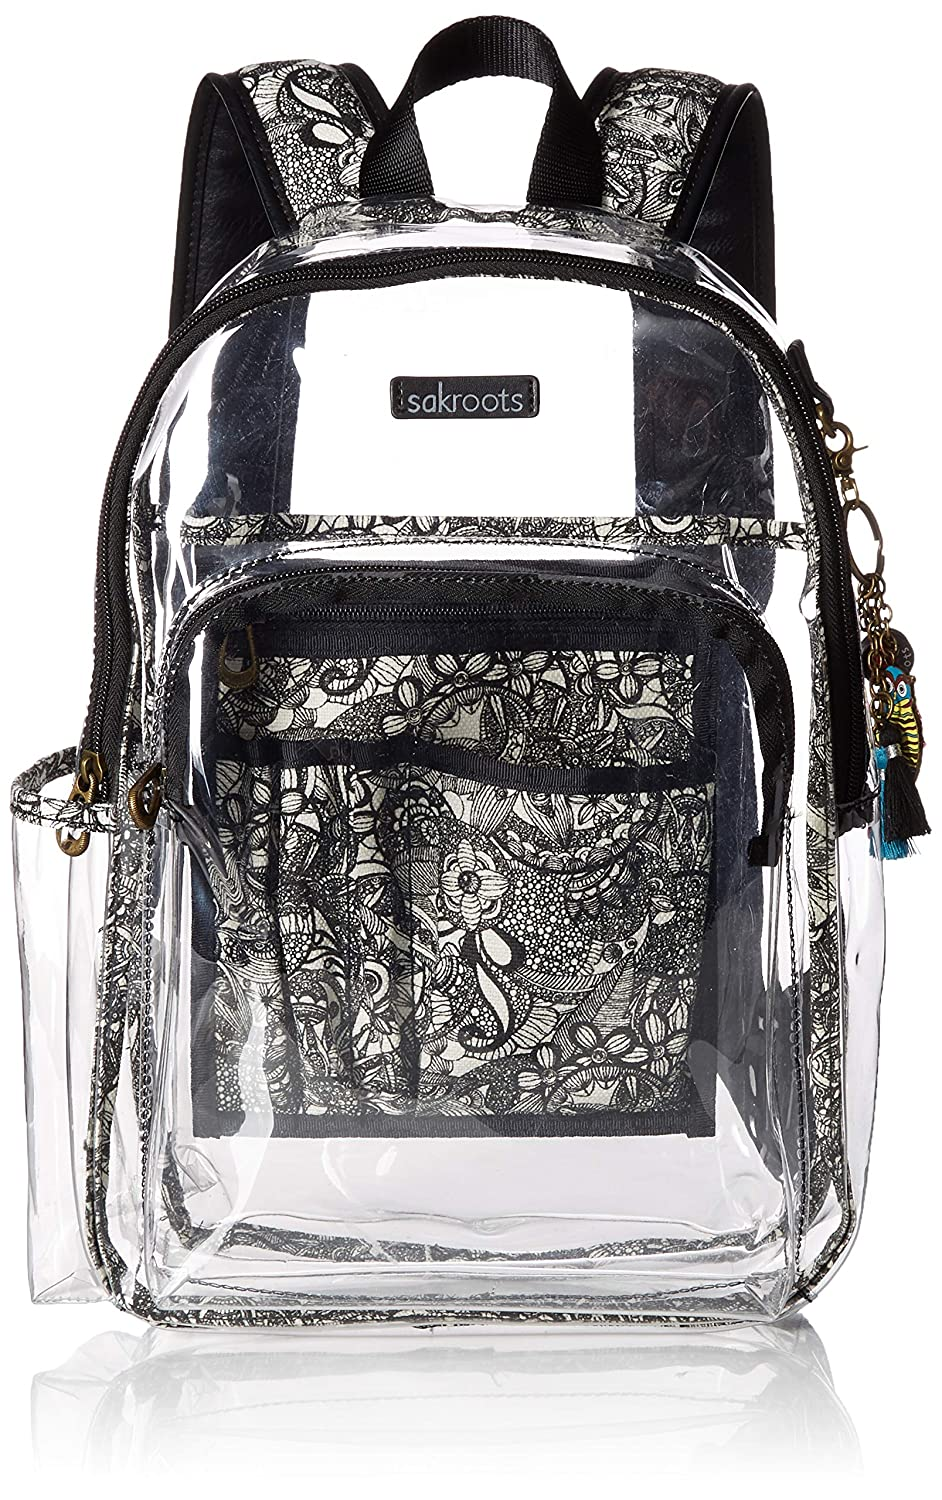 Sakroots ユニセックスアダルト Sakroots Festival Backpack One Size クリア B07L698VMX